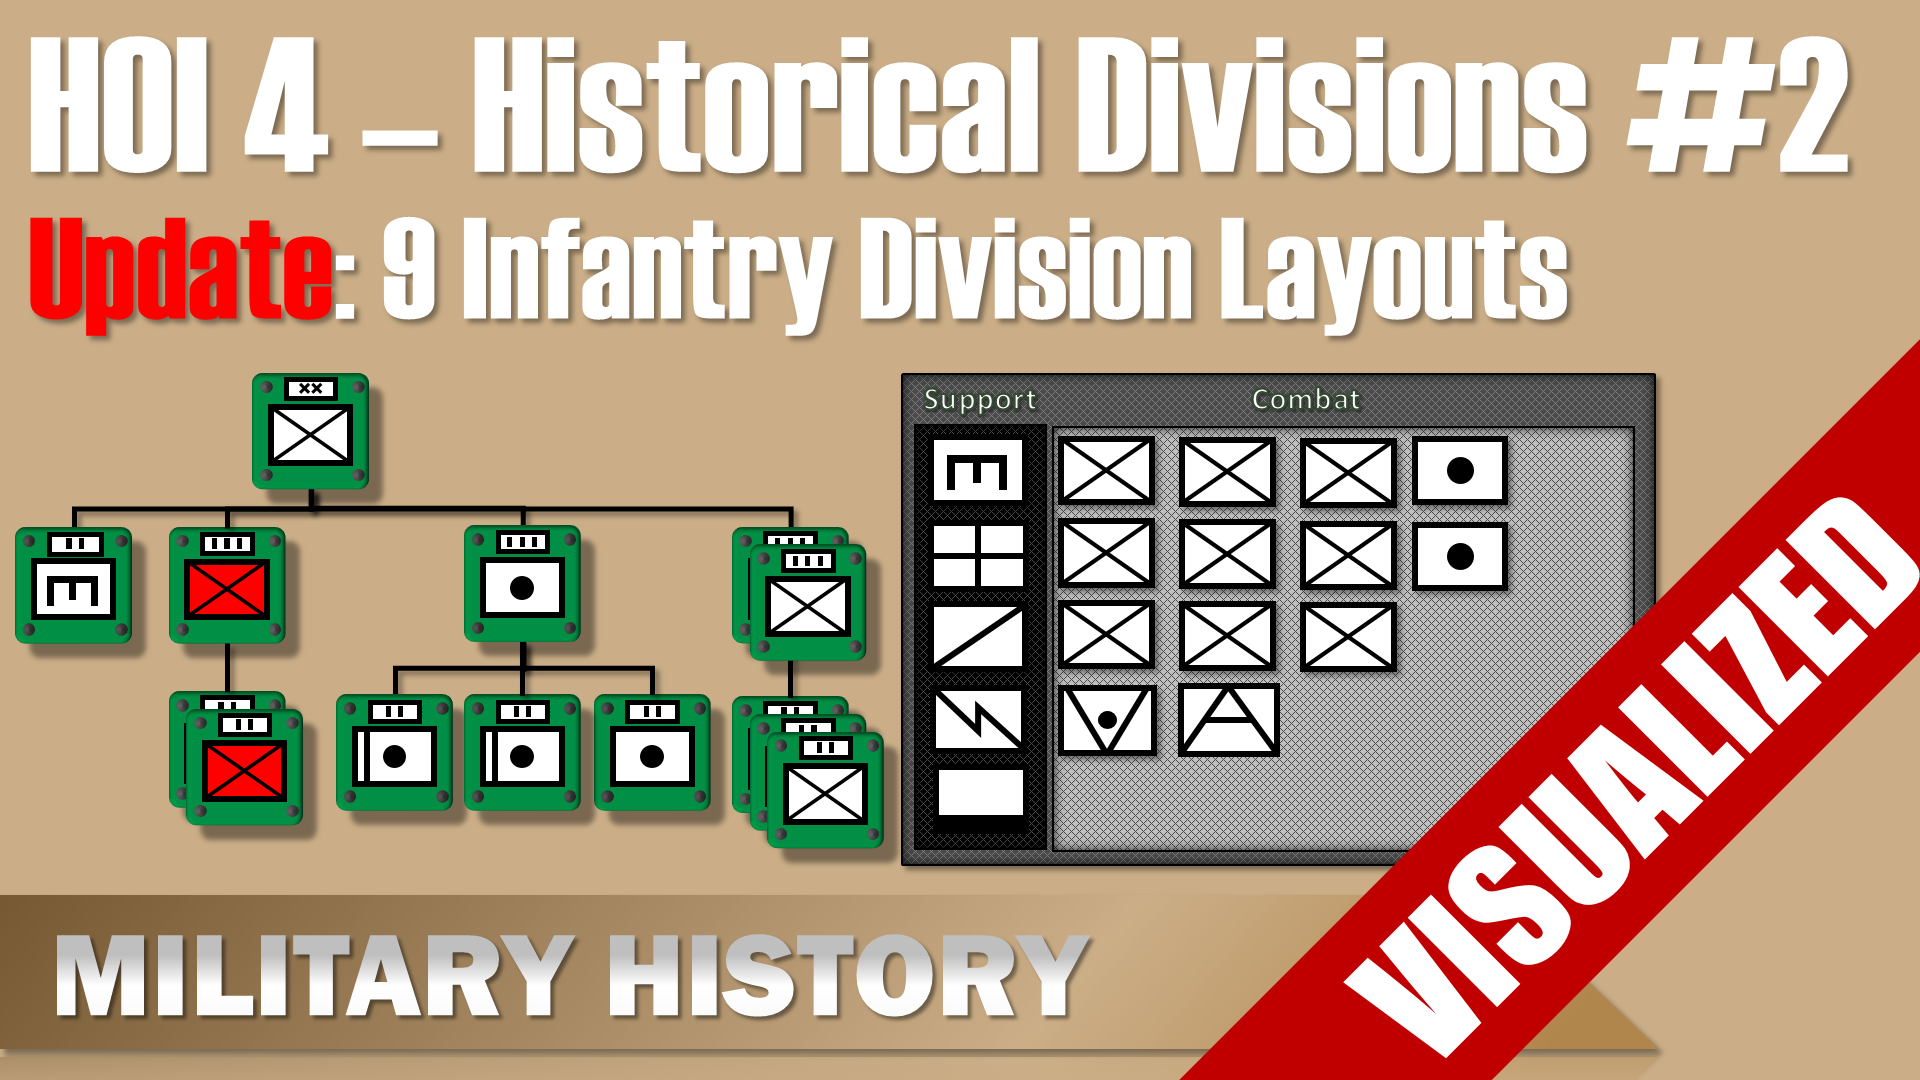 Update: HOI 4 – Historical Infantry Division Layouts – Early War #Hearts of Iron